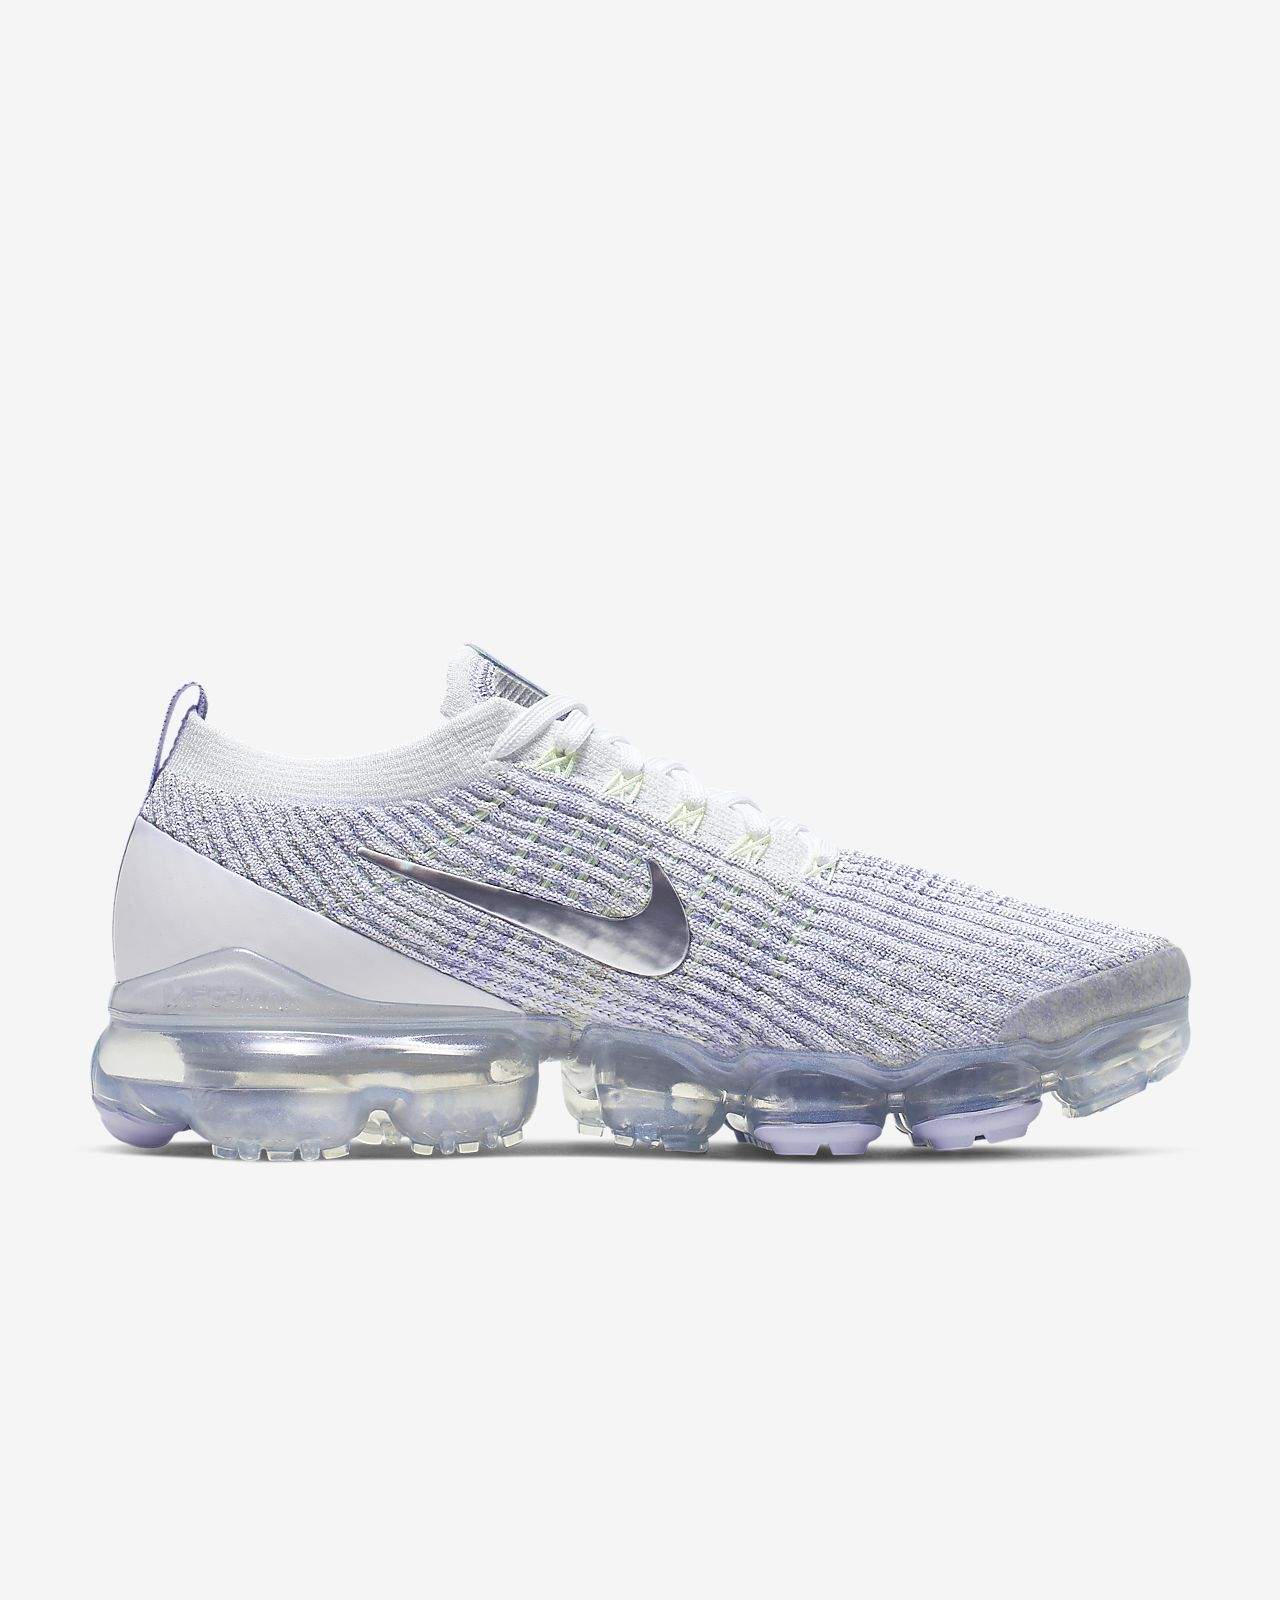 Nike Air Vapormax Flyknit,Nike Air Vapormax,Nike Air Max 90